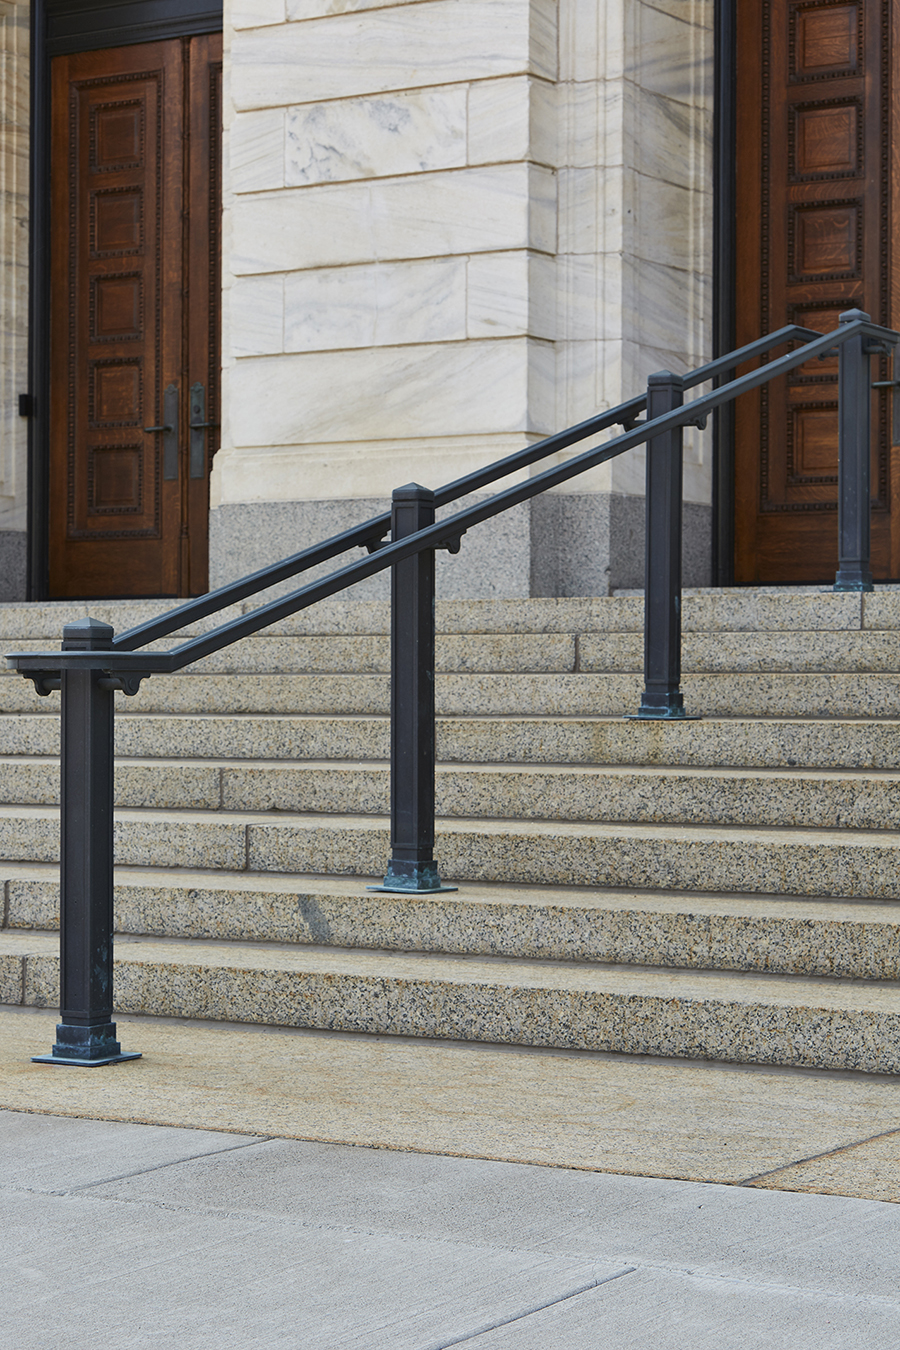 Bauer Metal Minnesota State Capitol Wrought Iron On-Site Welding Historic Preservation Restoriation Architectural Fabrication Minnesota Twin Cities Metalwork Luxury Railings Stairs Wrought Iron Fabricator Welding Twin Cities MN8.jpg